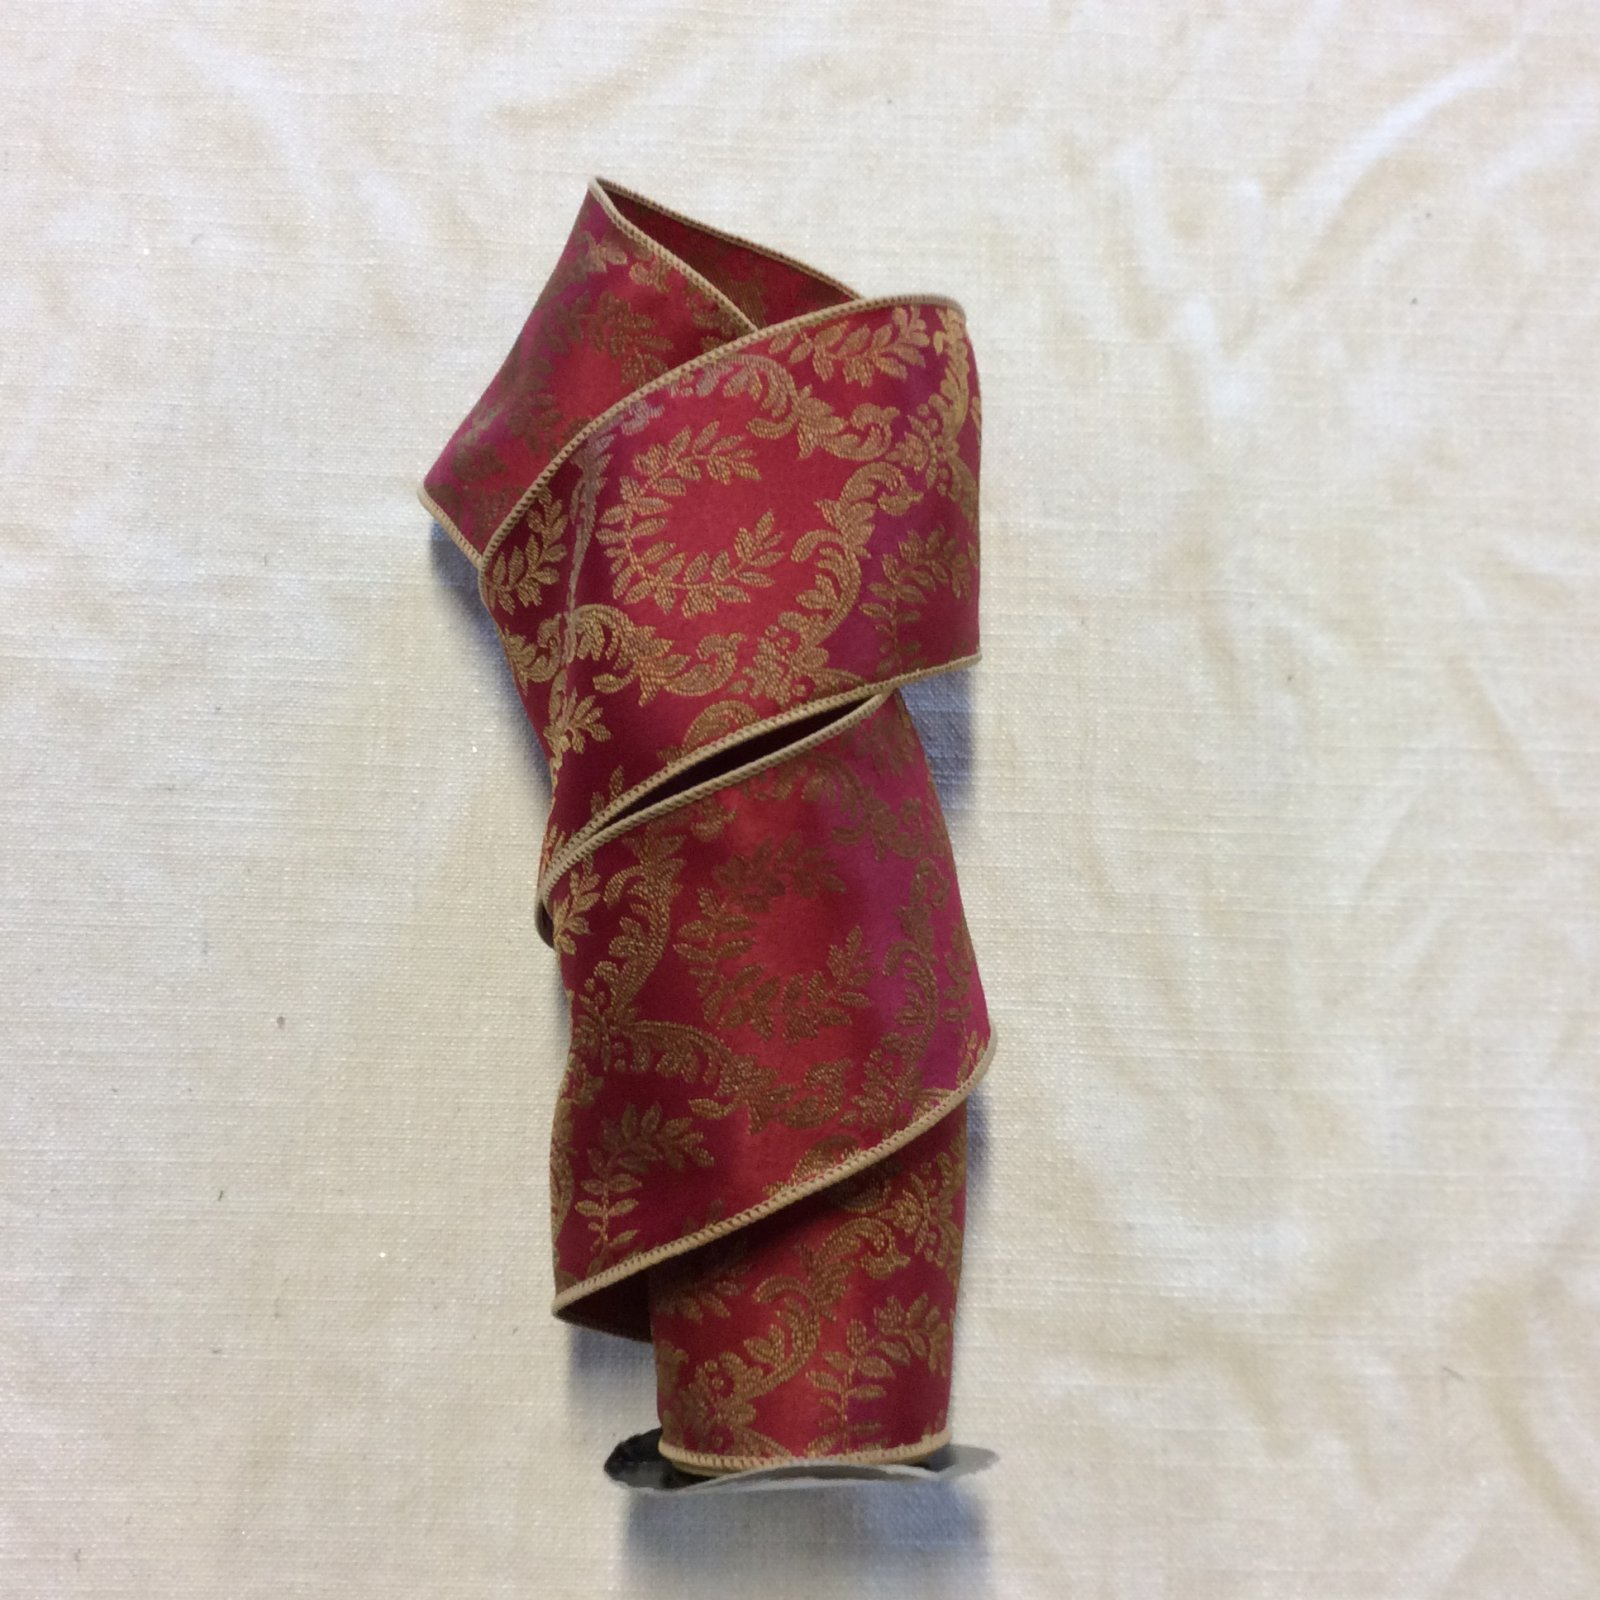 Red and Gold Brocade Damask Formal Holiday Wired Ribbon Decor Trim RIB1079